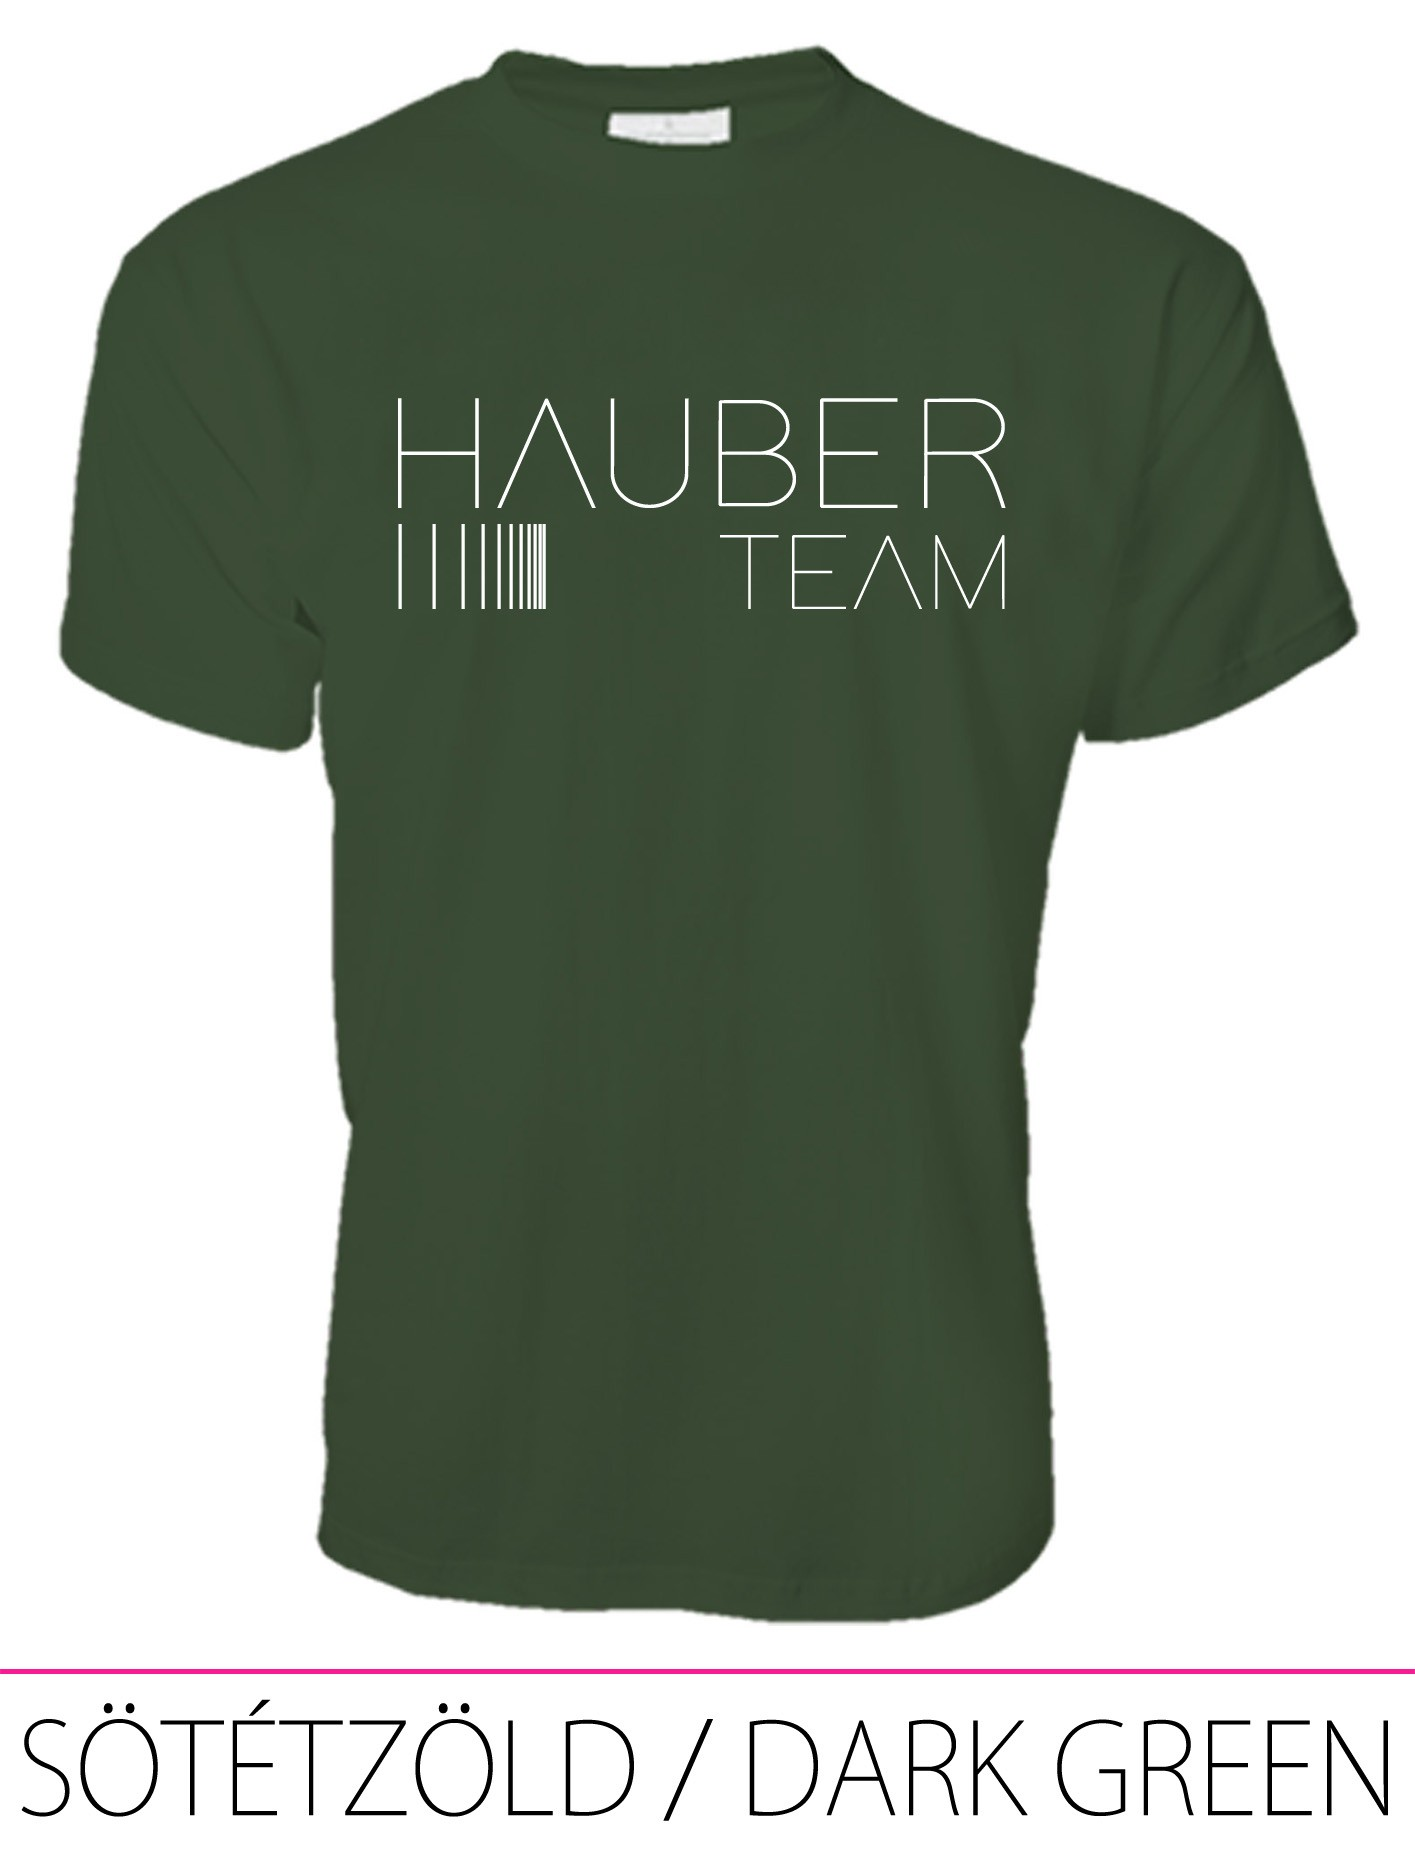 MEN CREW NECK T-SHIRT / HAUBER TEAM DARK GREEN